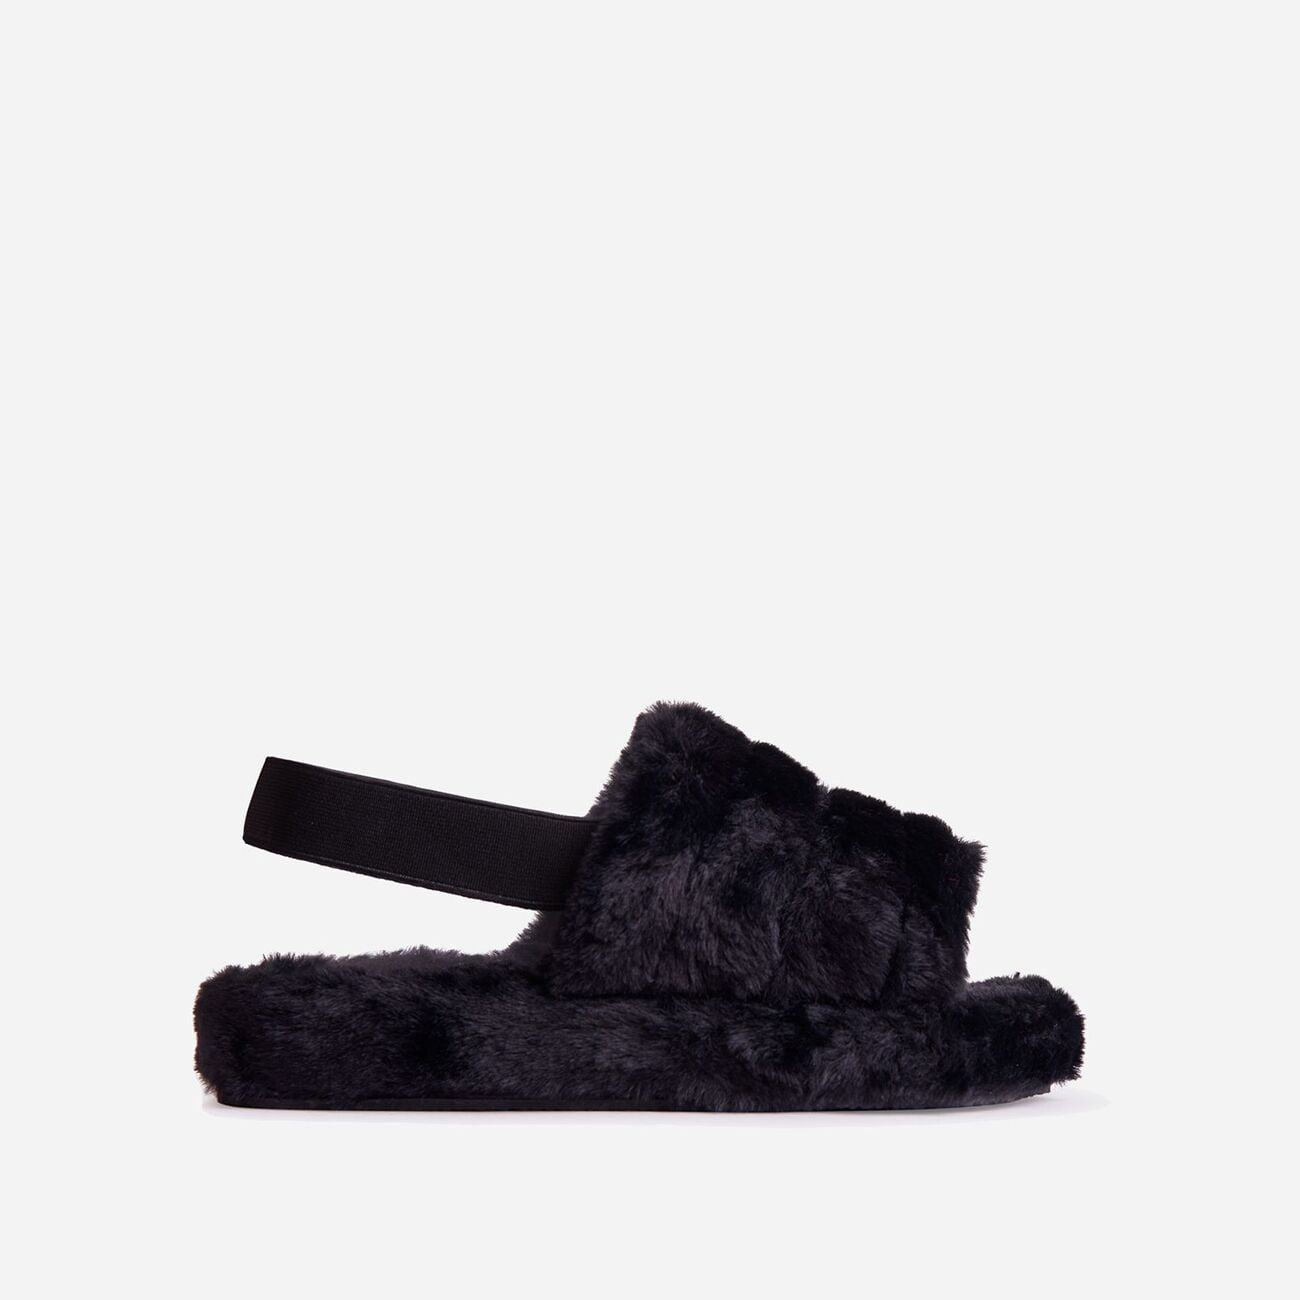 Save £90.01 by opting for these near-identical Ego slippers instead